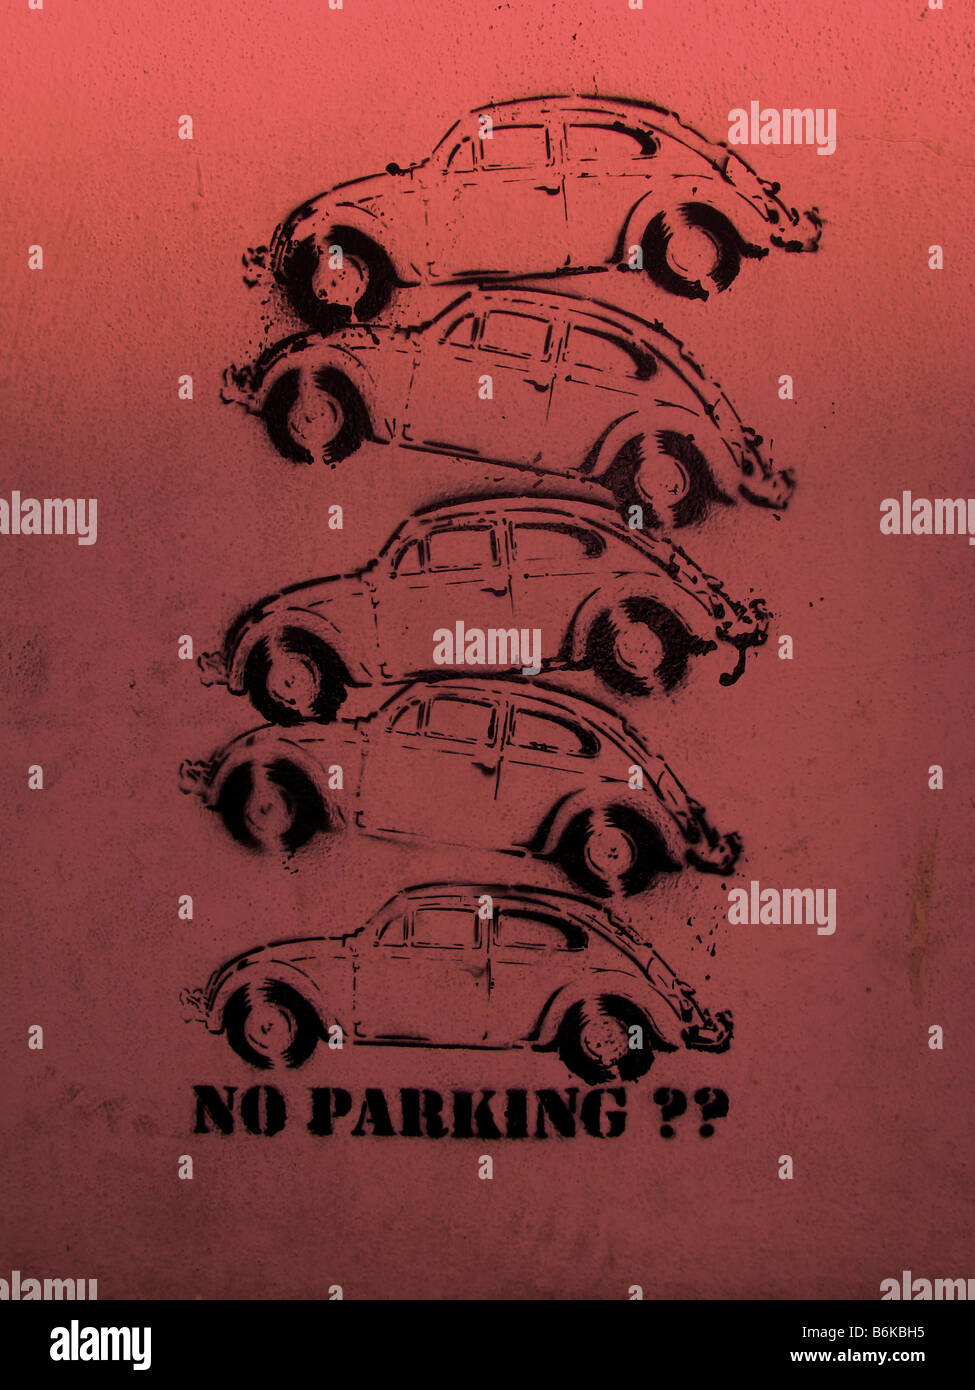 VW Beetle x 5.Poster print on a wall, no parking. Problem with parking, multi story parking on-top of each other. Stock Photo